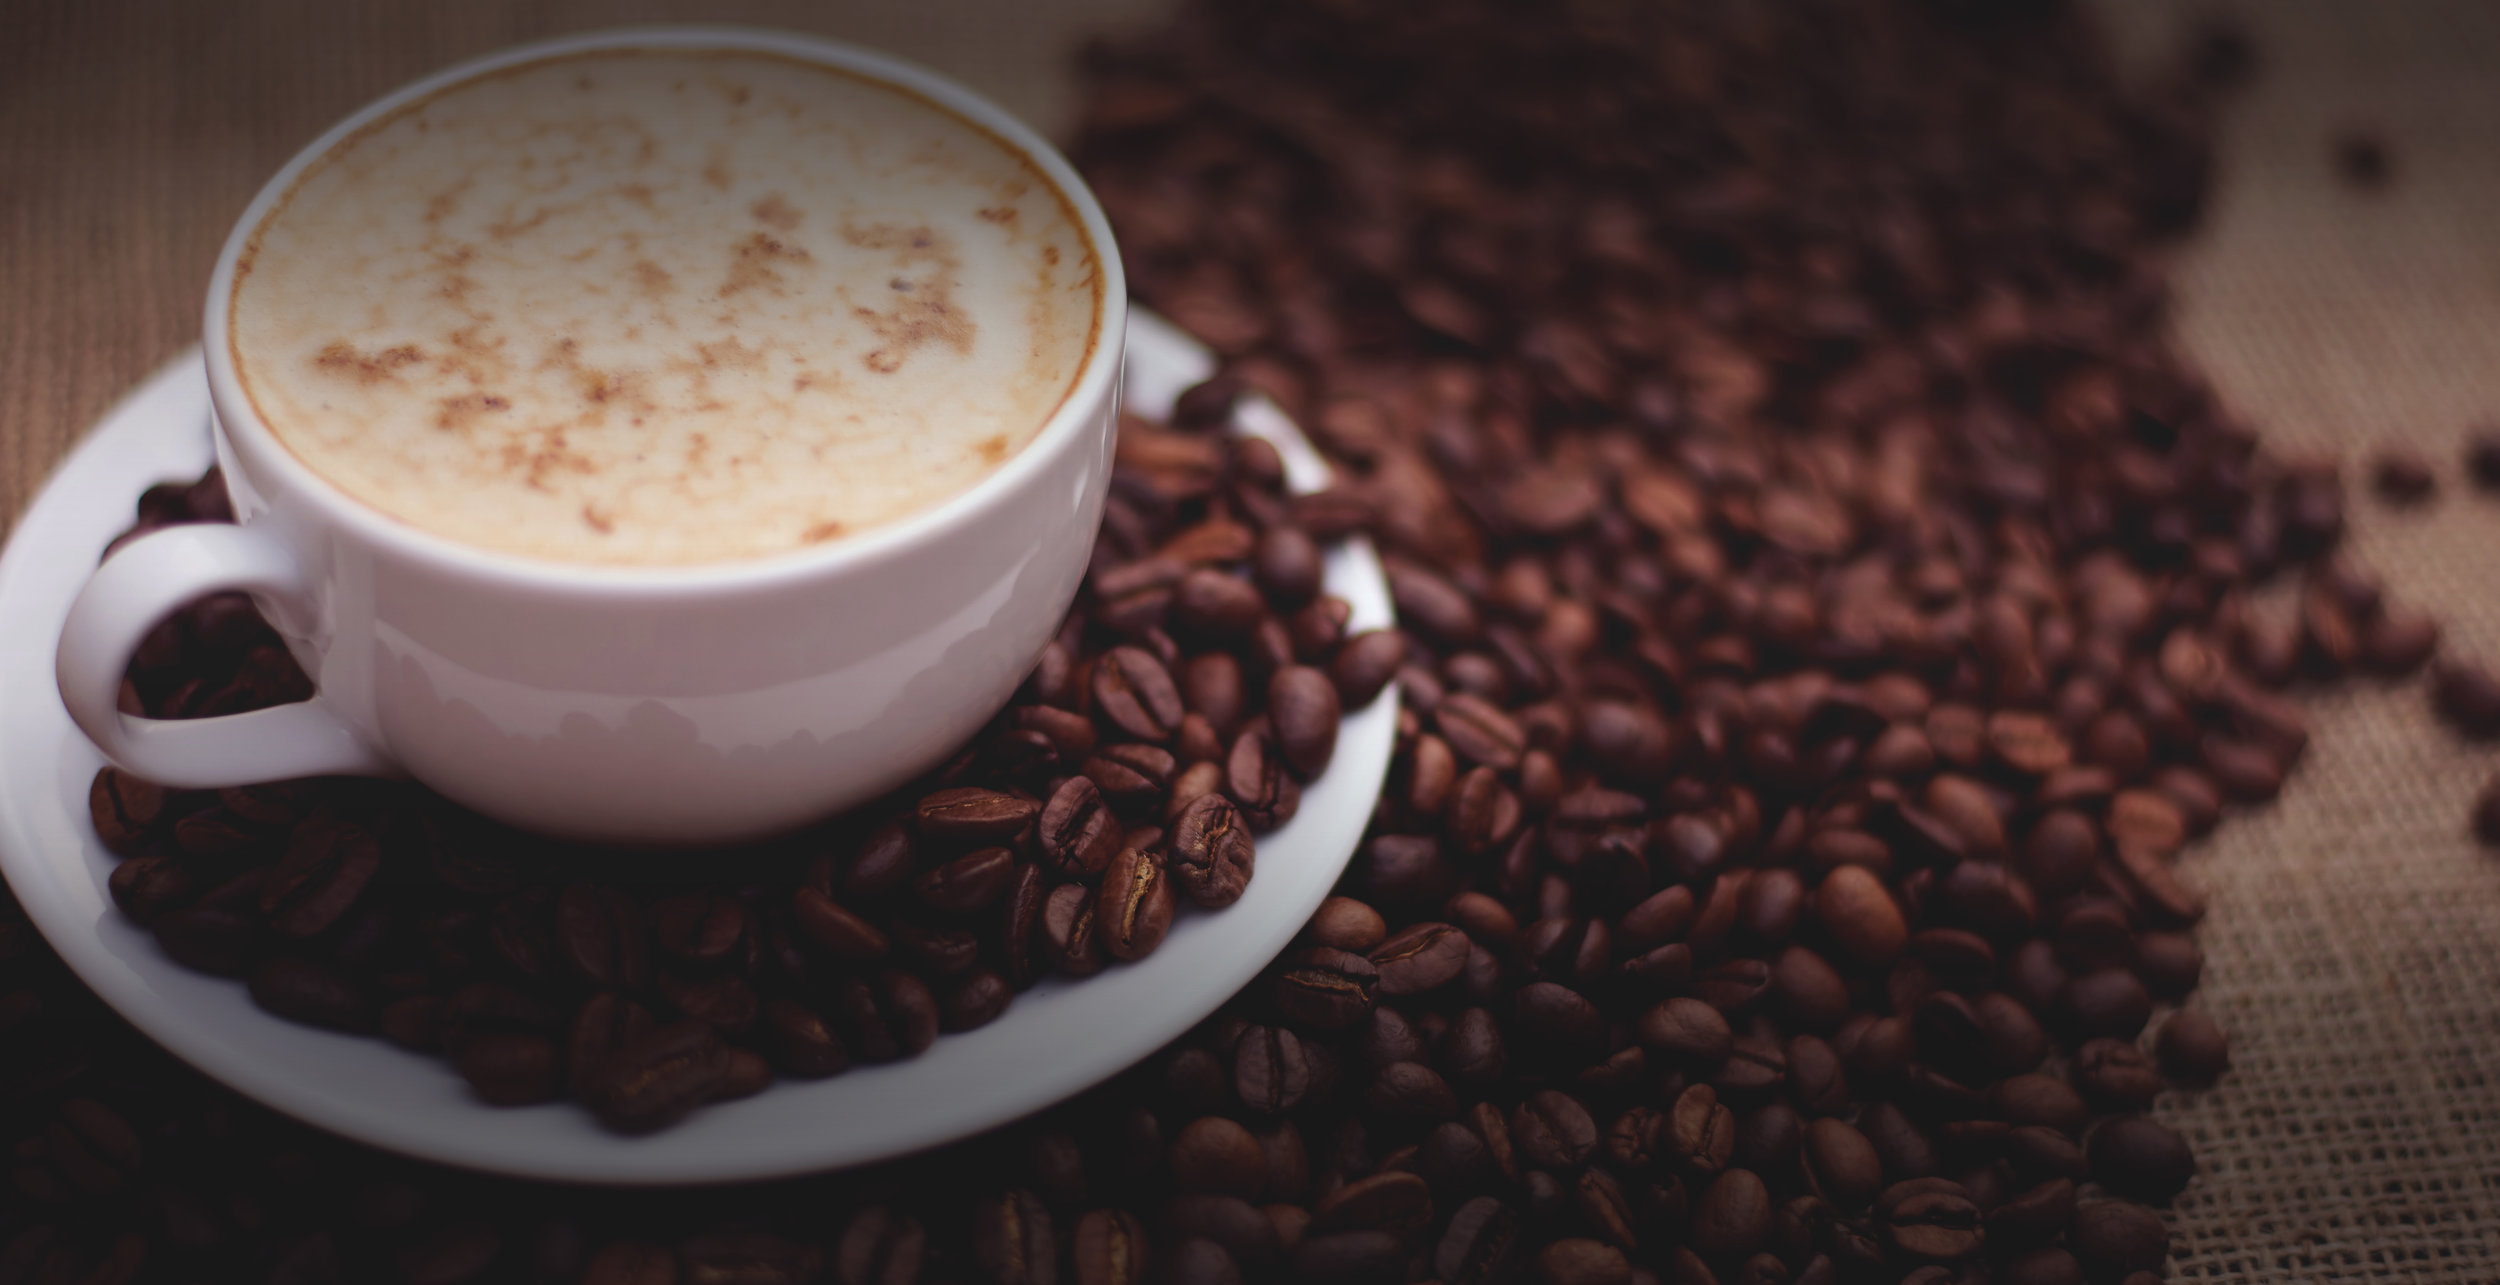 Too much caffeine can cause symptoms that resemble anxiety and even panic.